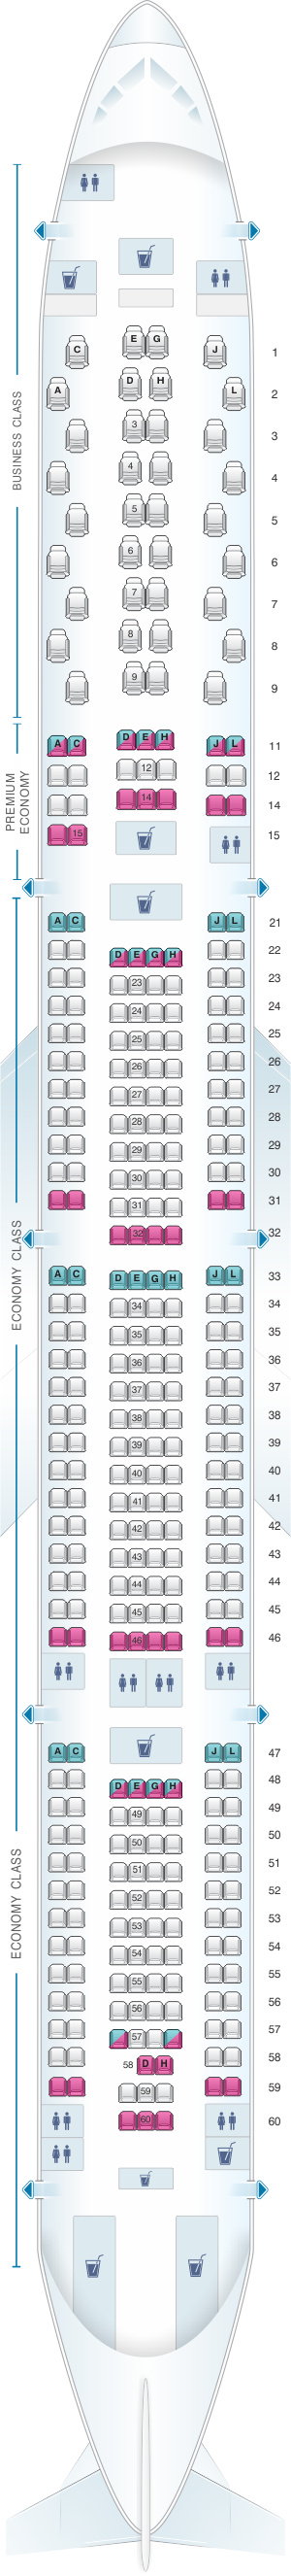 Seat map for Iberia Airbus A340 600 V2